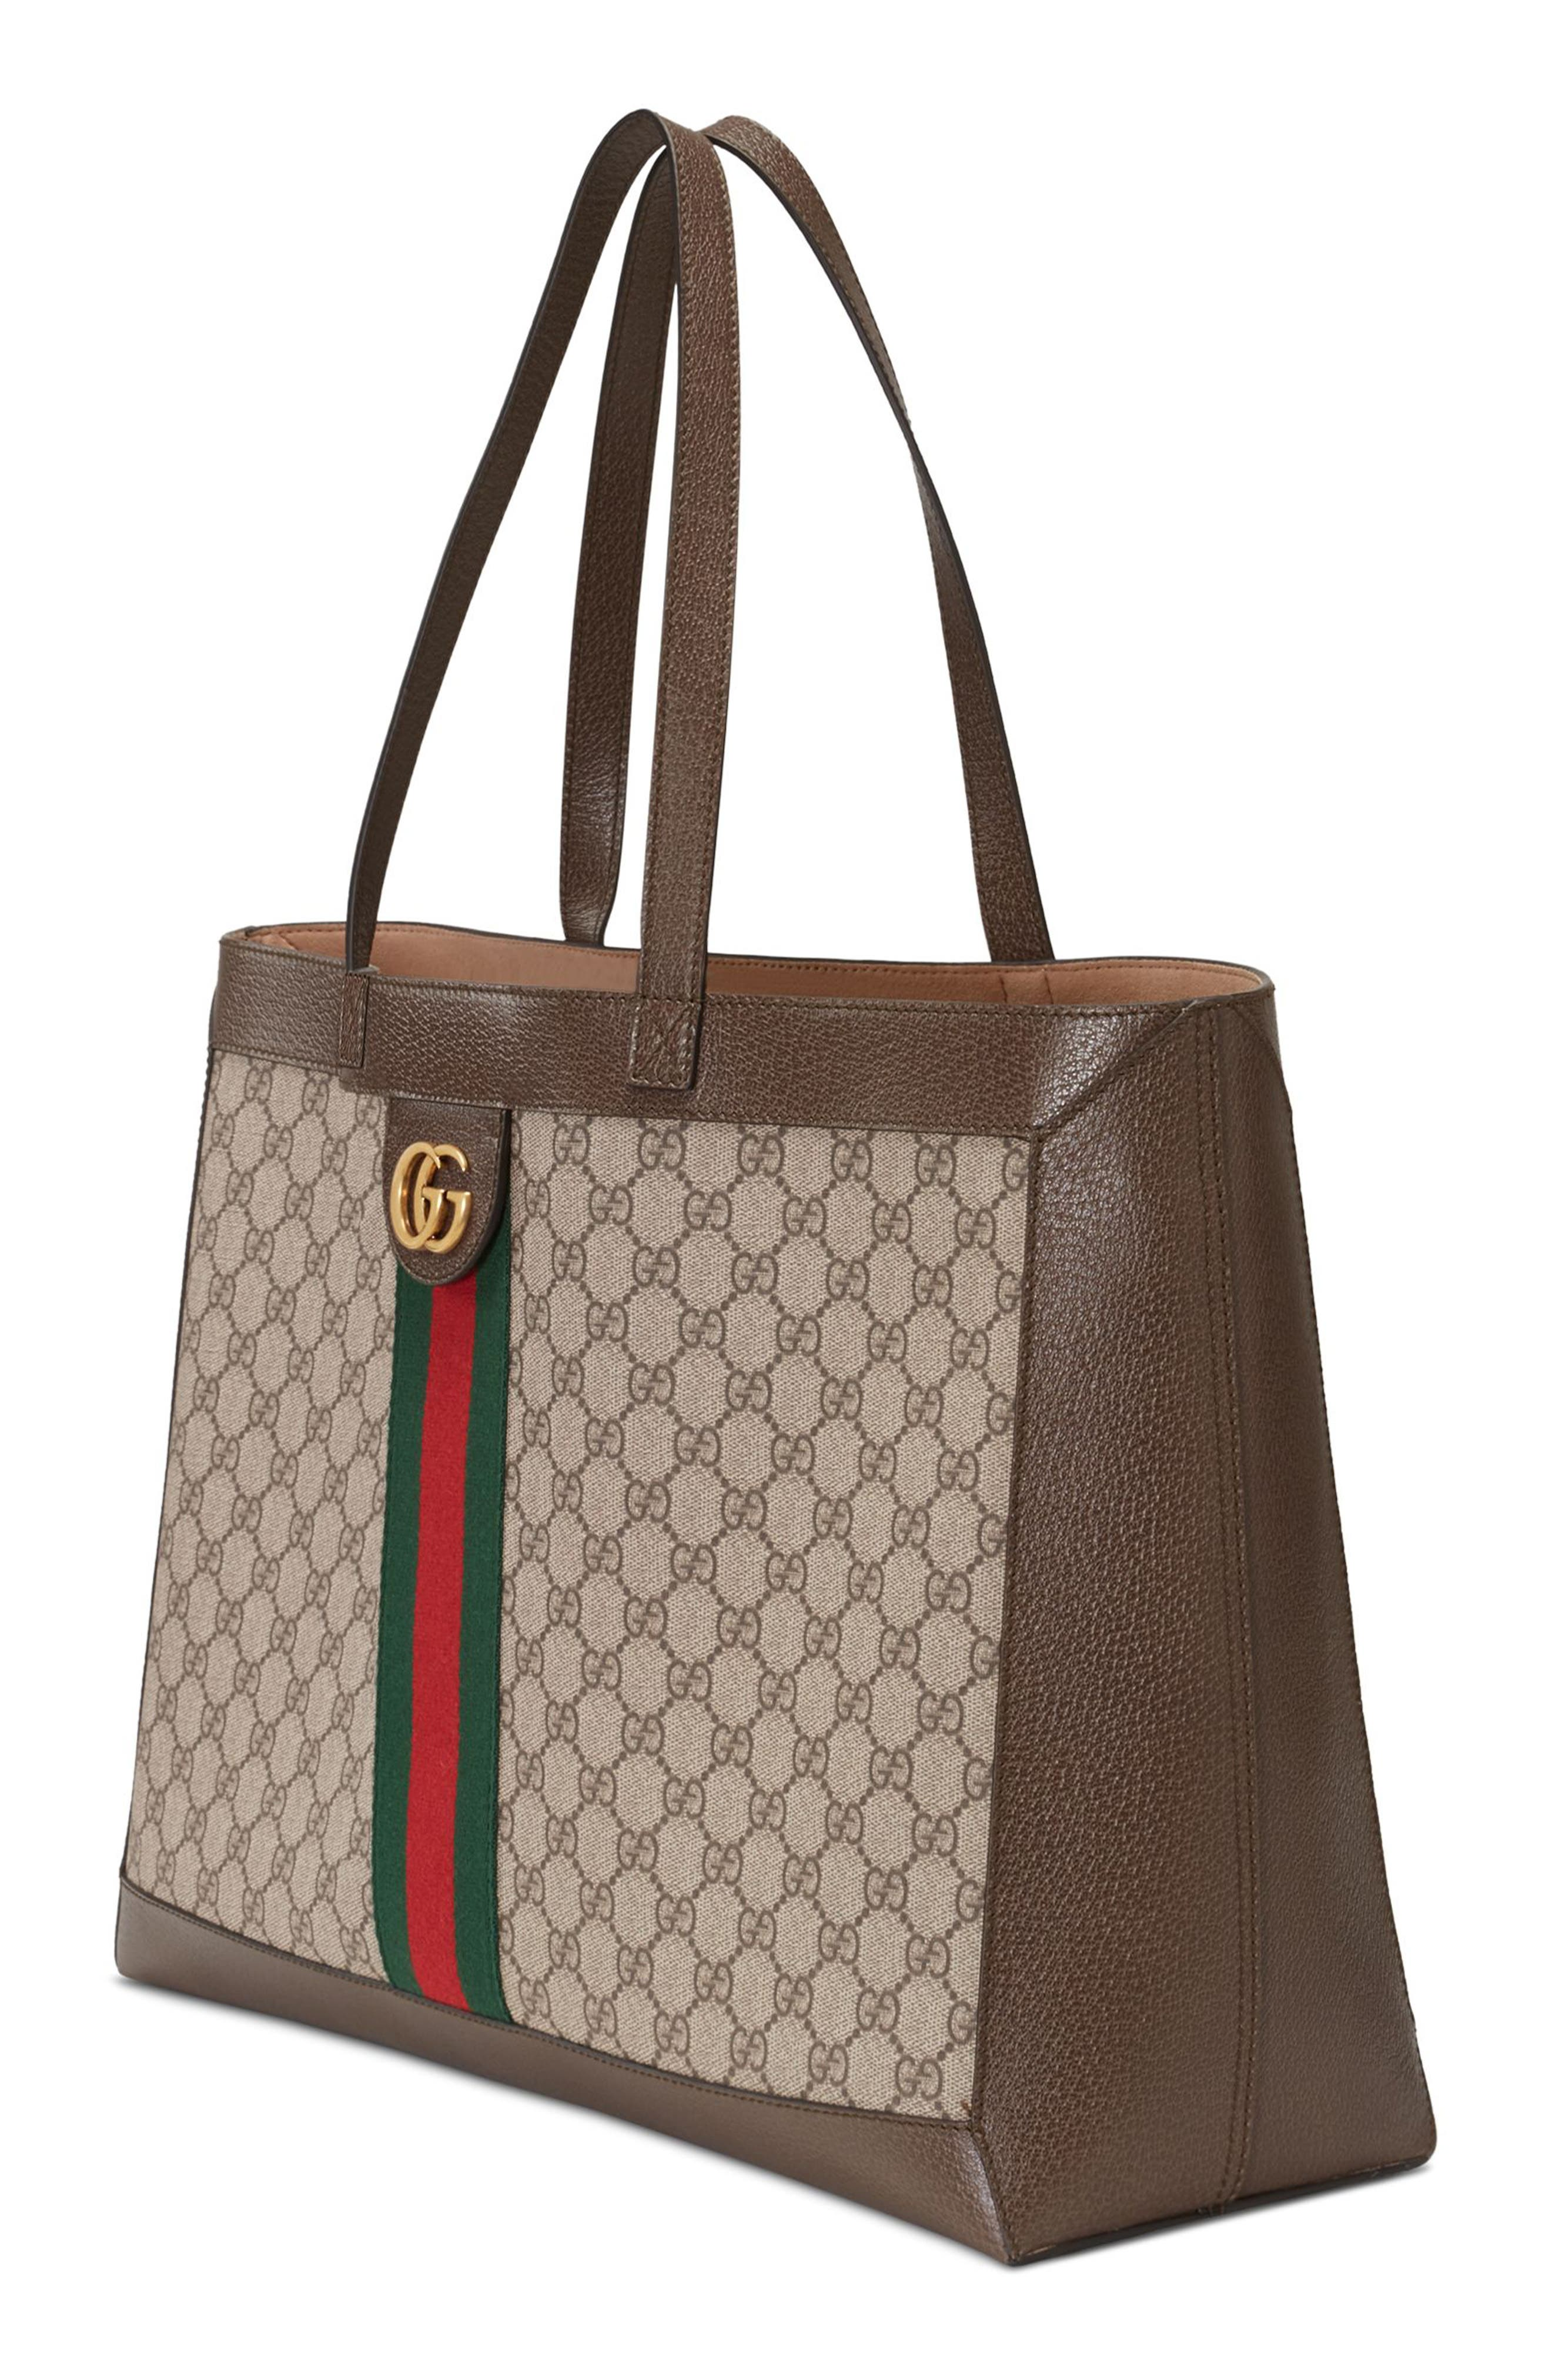 Ophidia GG Supreme Canvas Tote,                             Alternate thumbnail 4, color,                             284